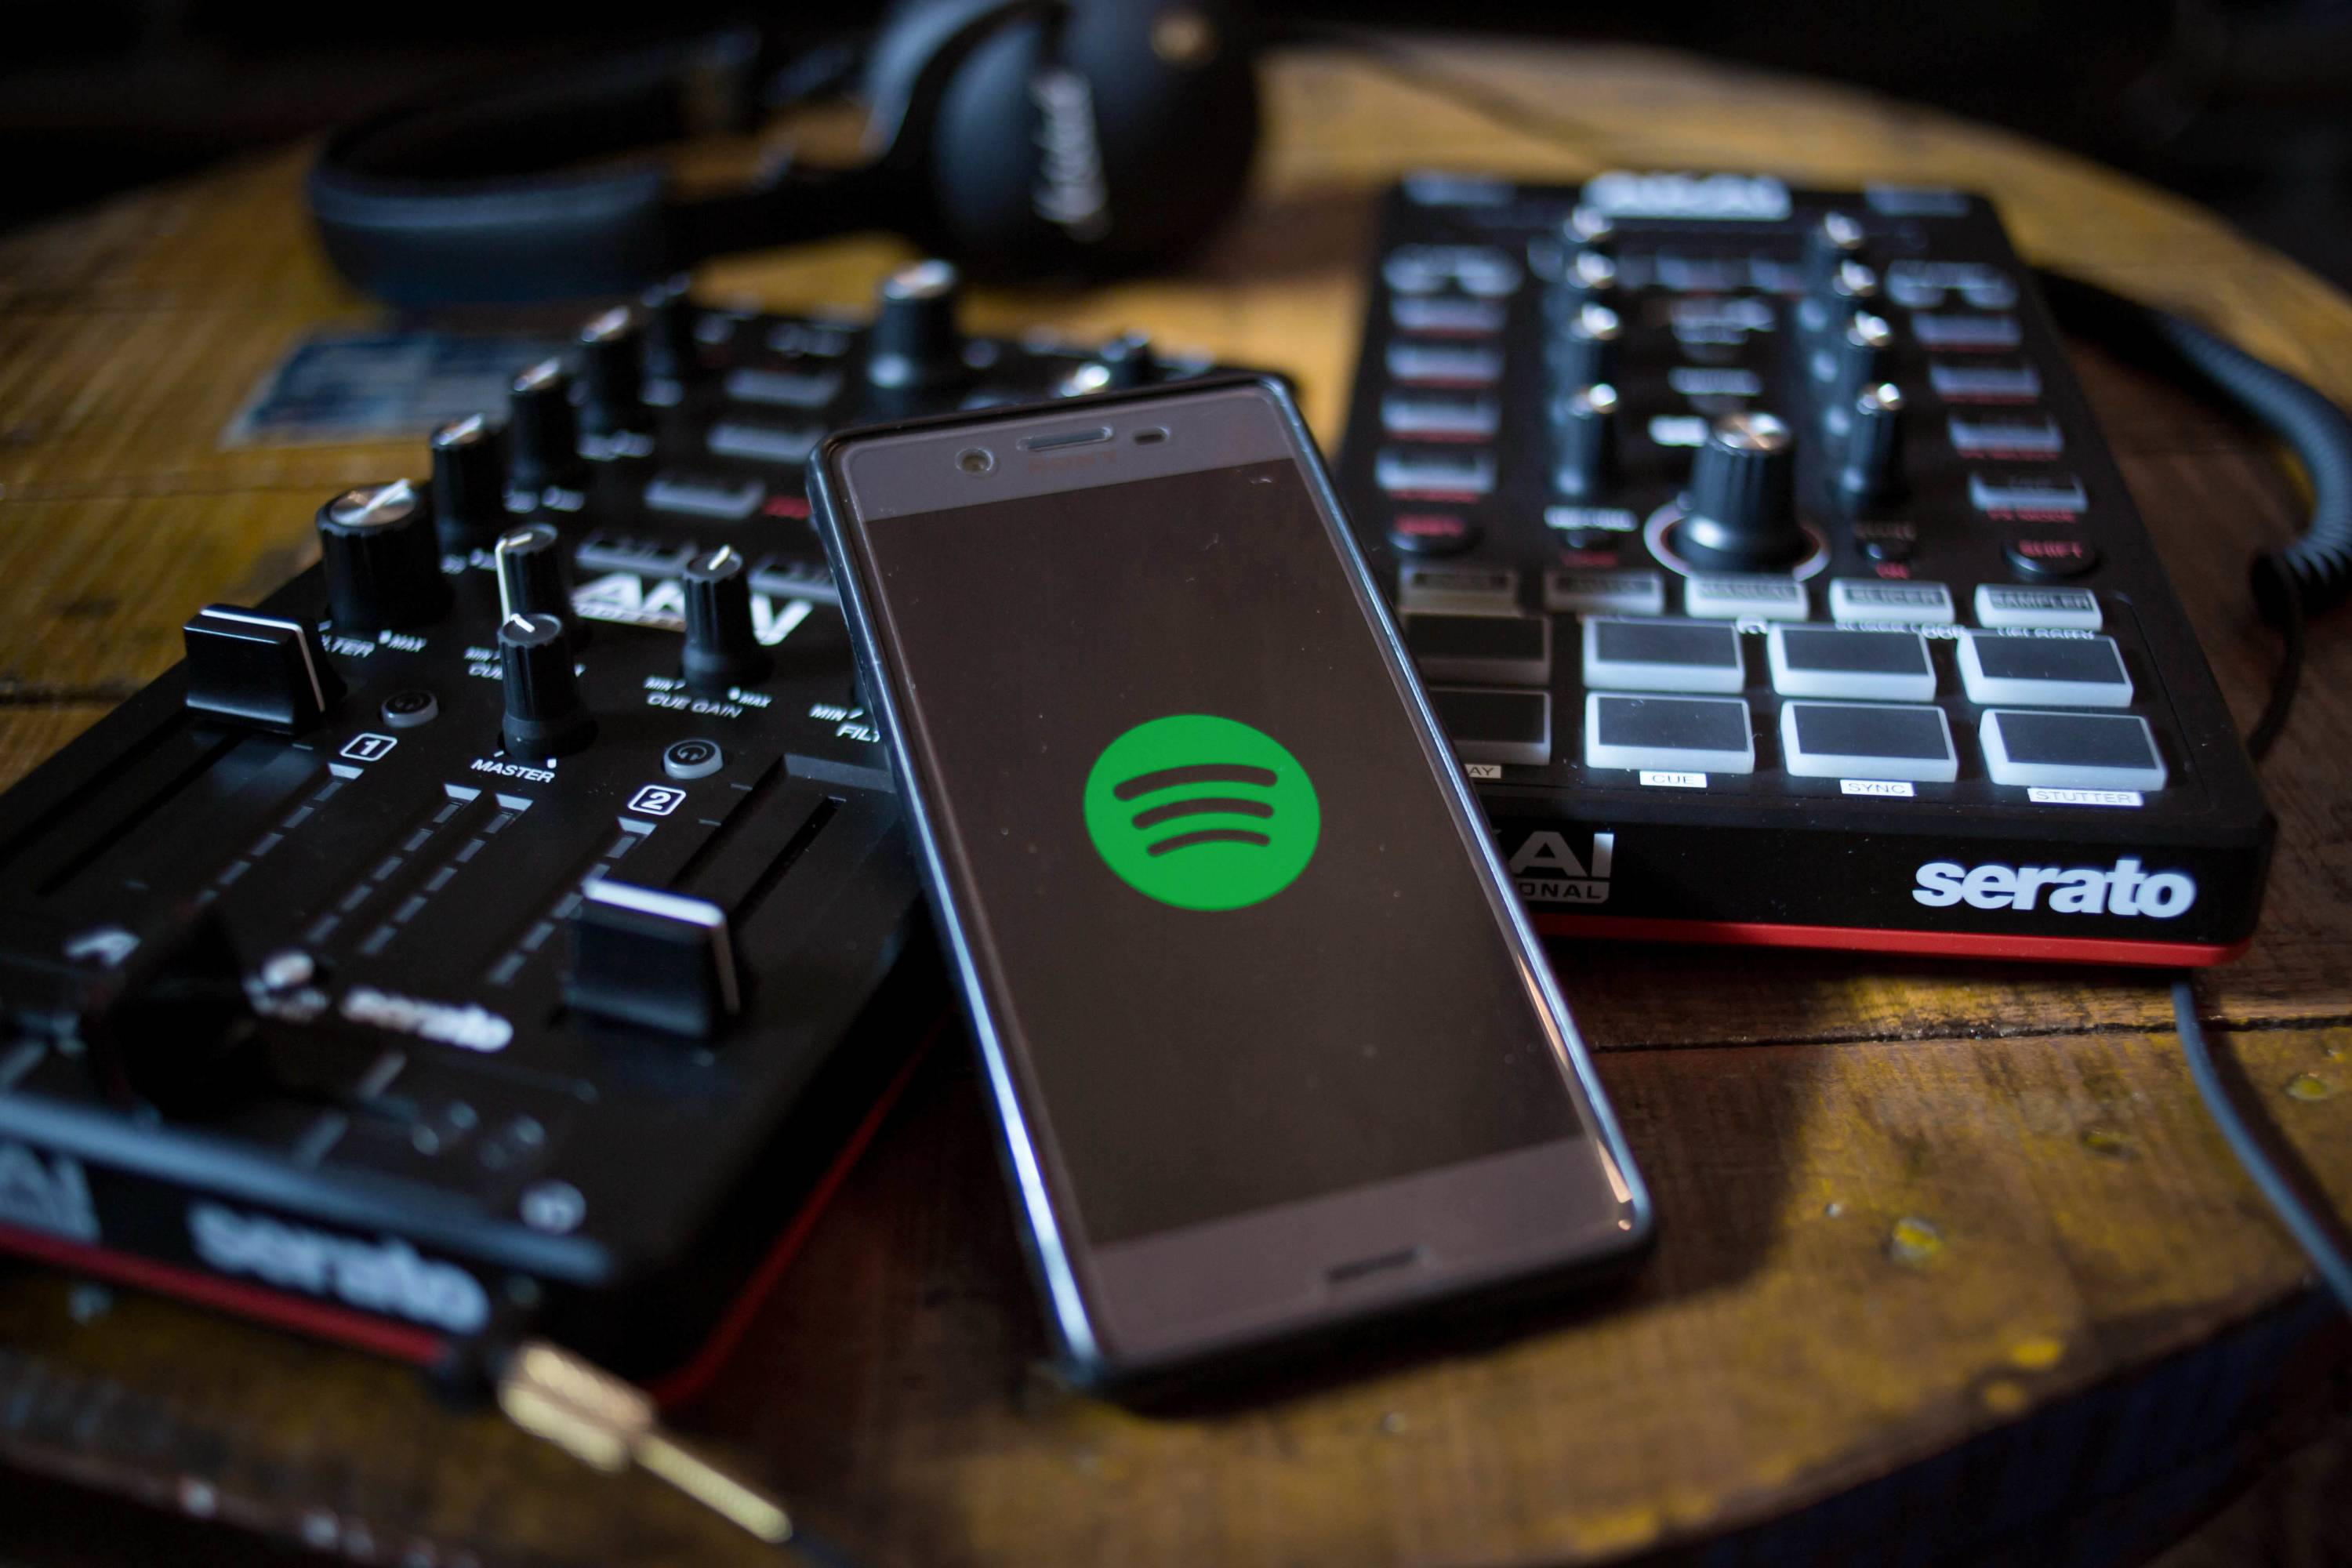 The Spotify app seen display on a Android smartphone with